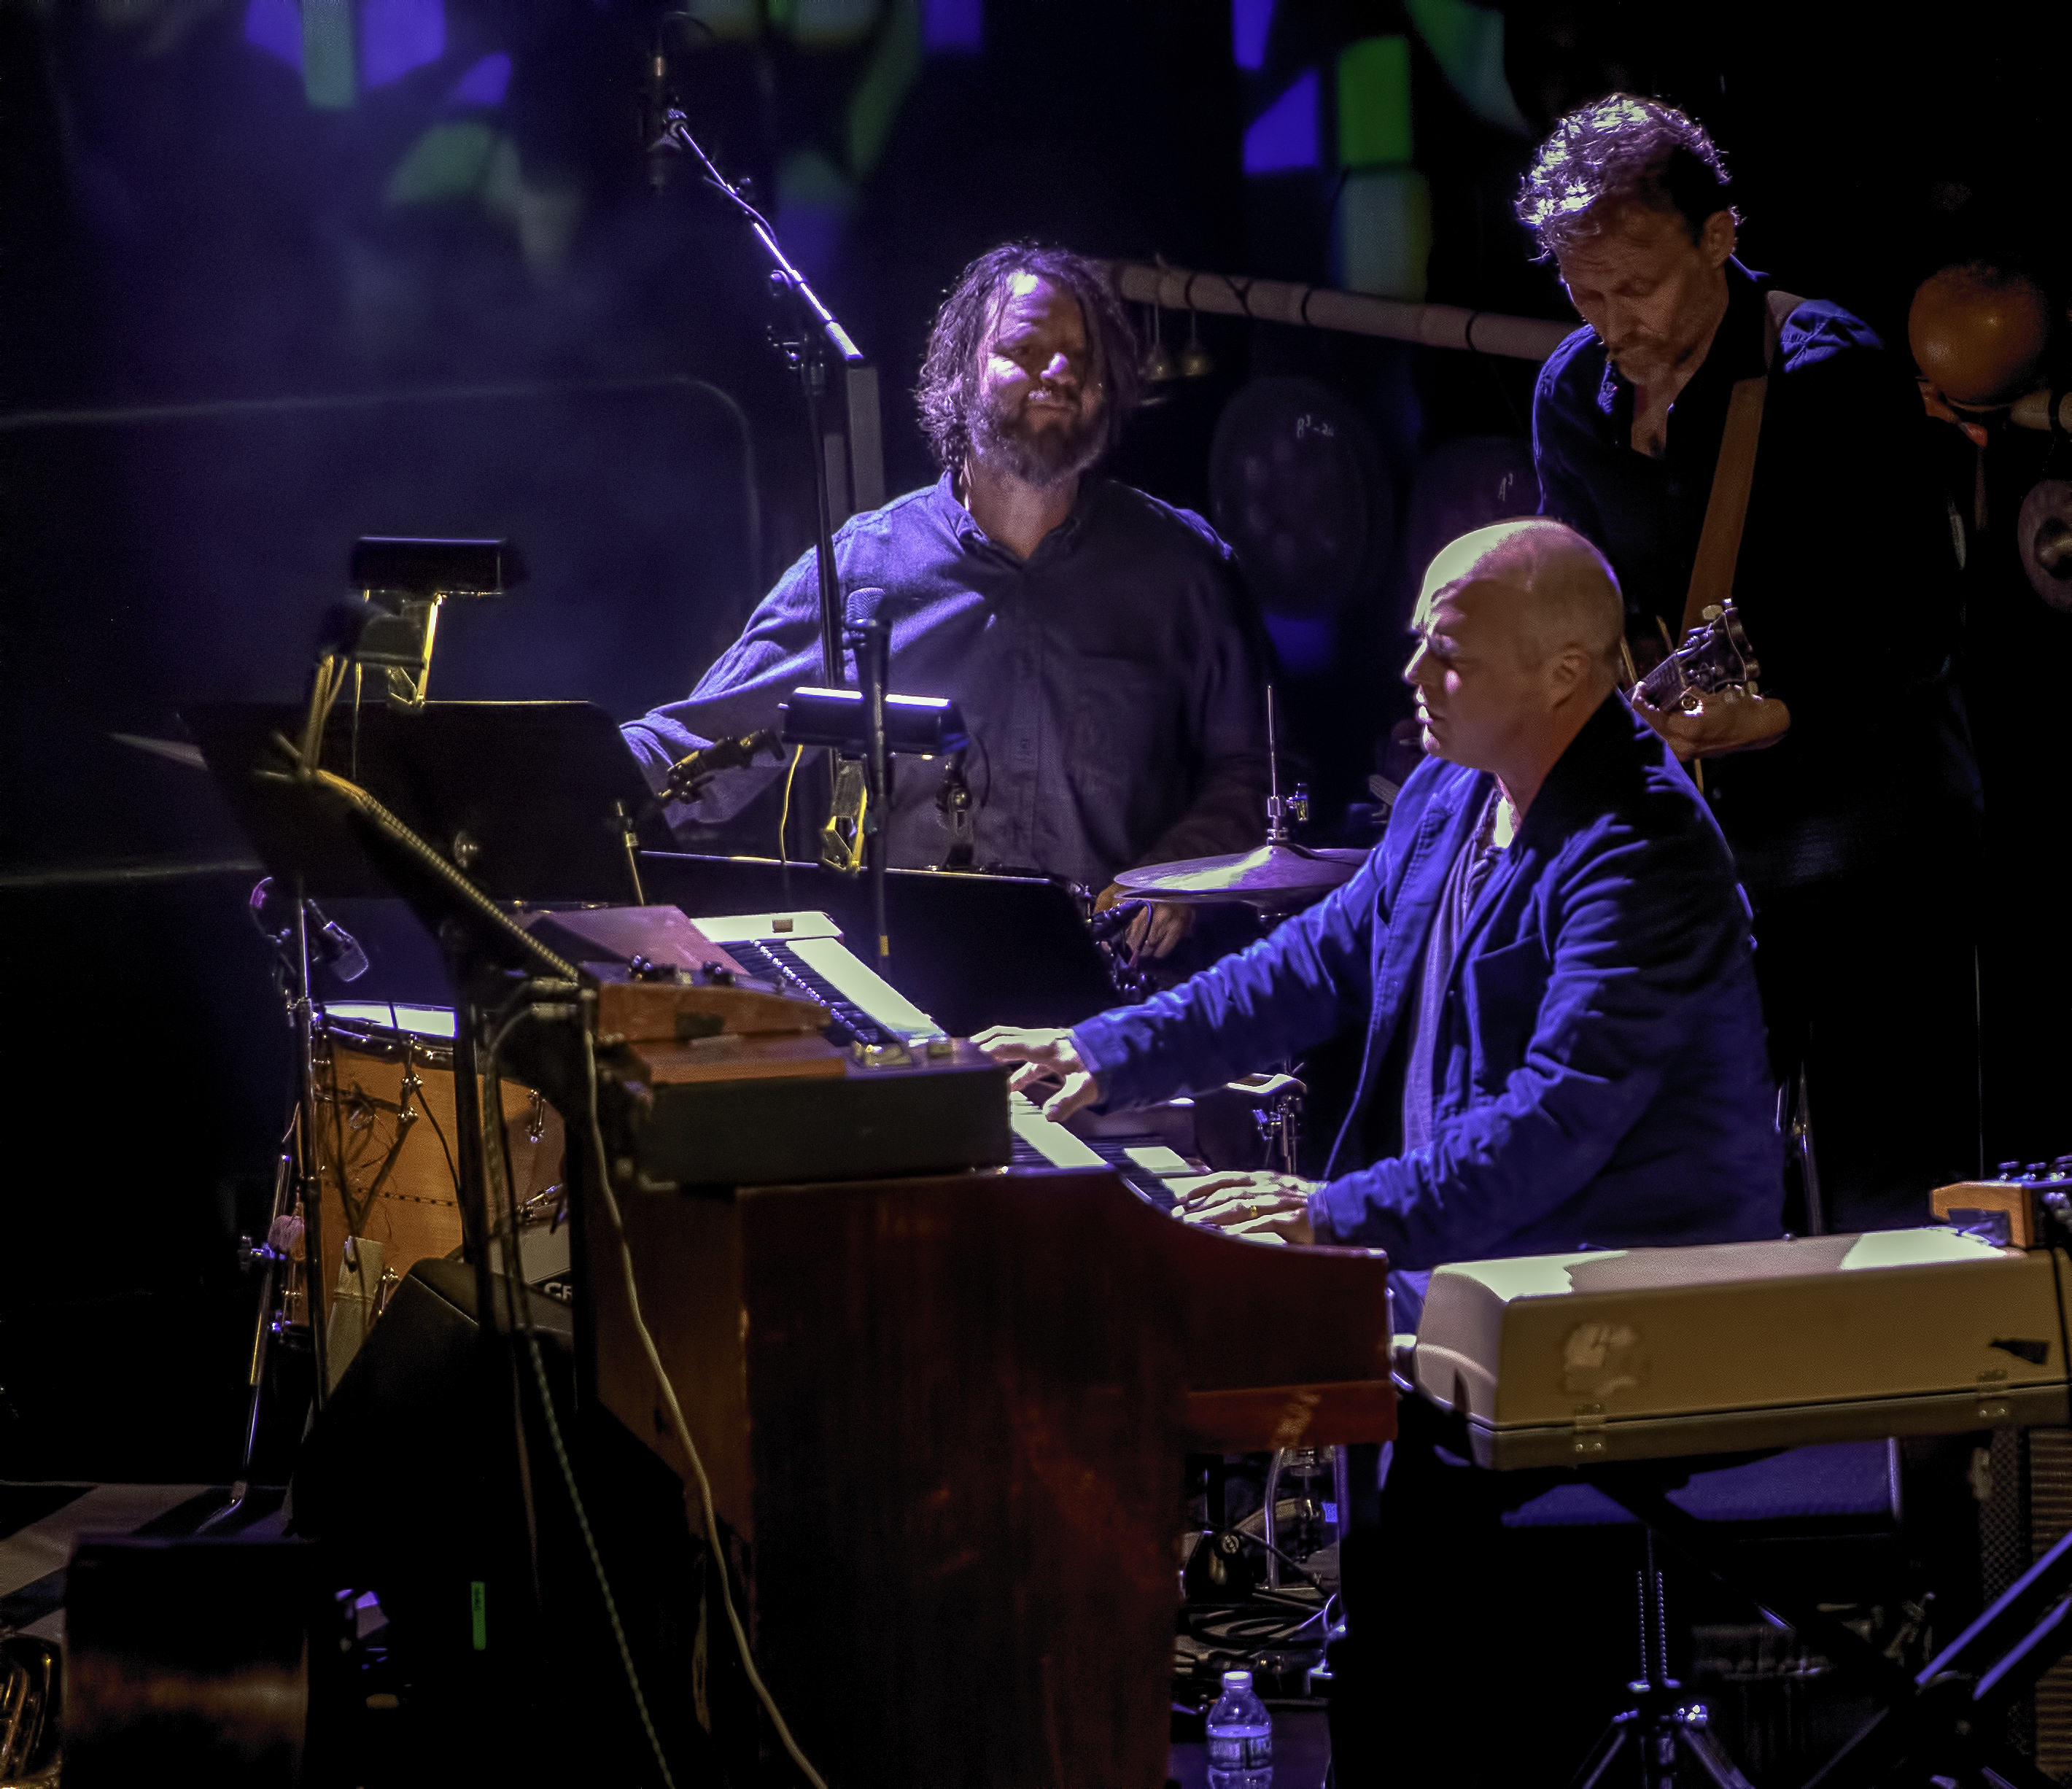 John Medeski, Chris Wood and Billy Martin with Medeski, Martin and Wood and Alarm Will Sound at the NYC Winter Jazzfest 2019